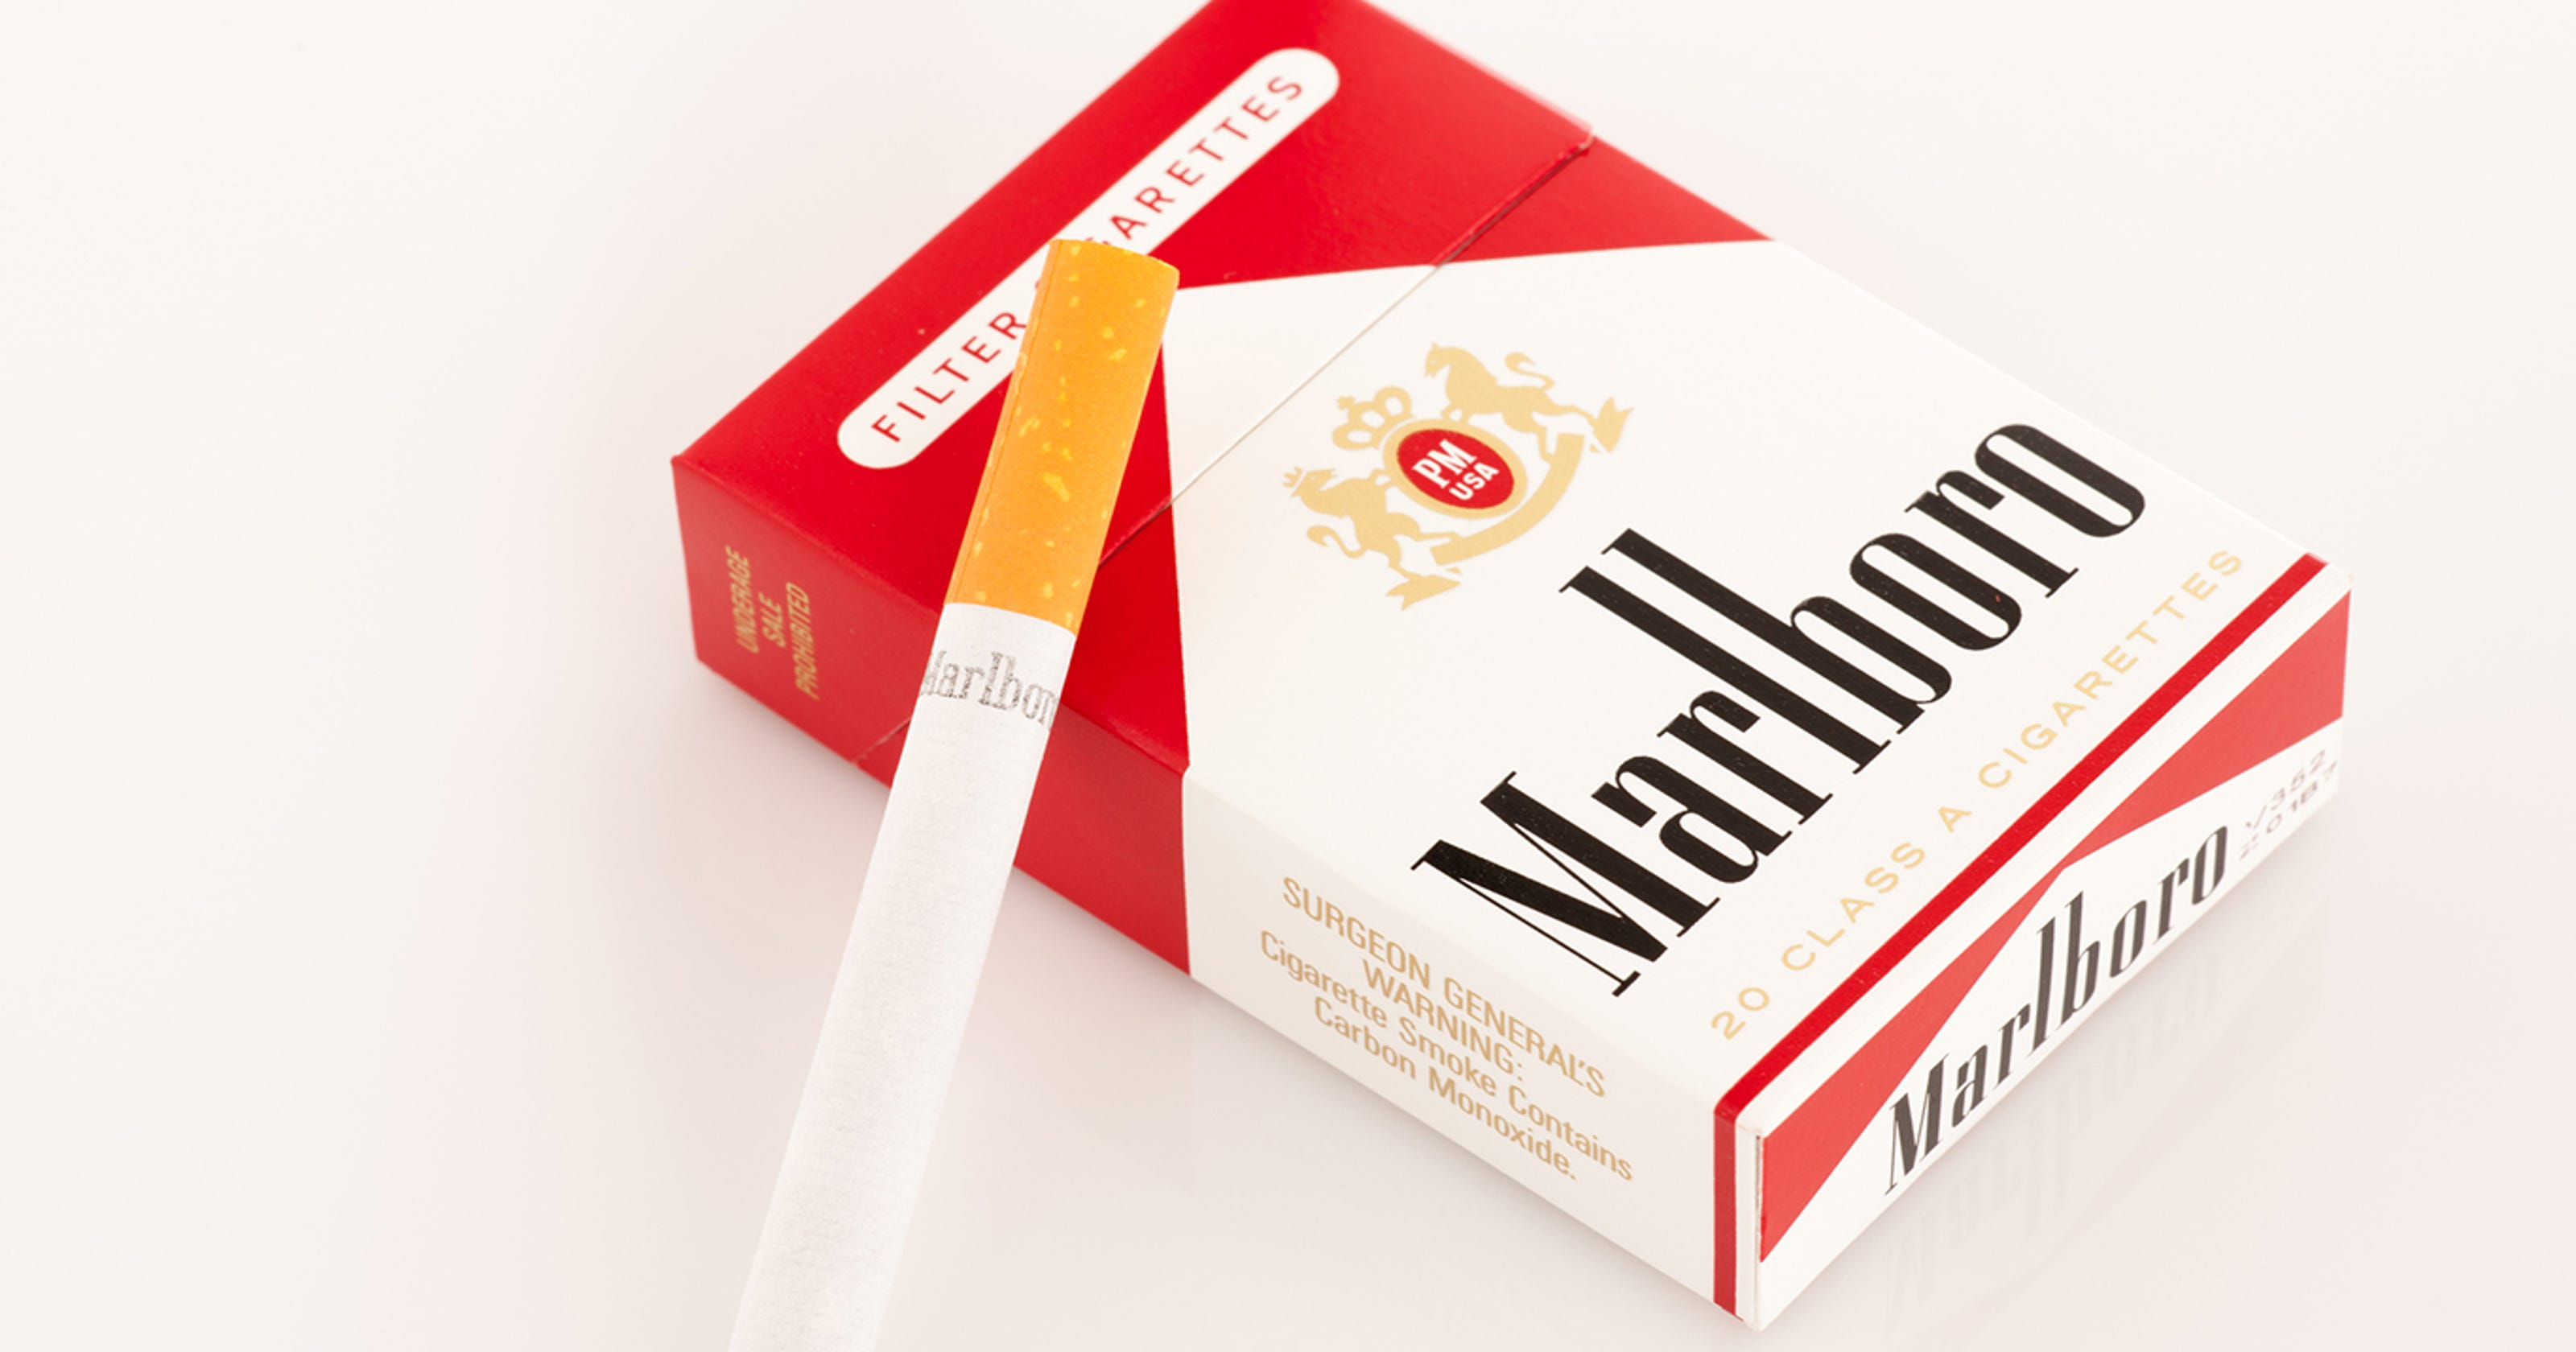 Cigarettes, foods make the 42 most outrageous product claims